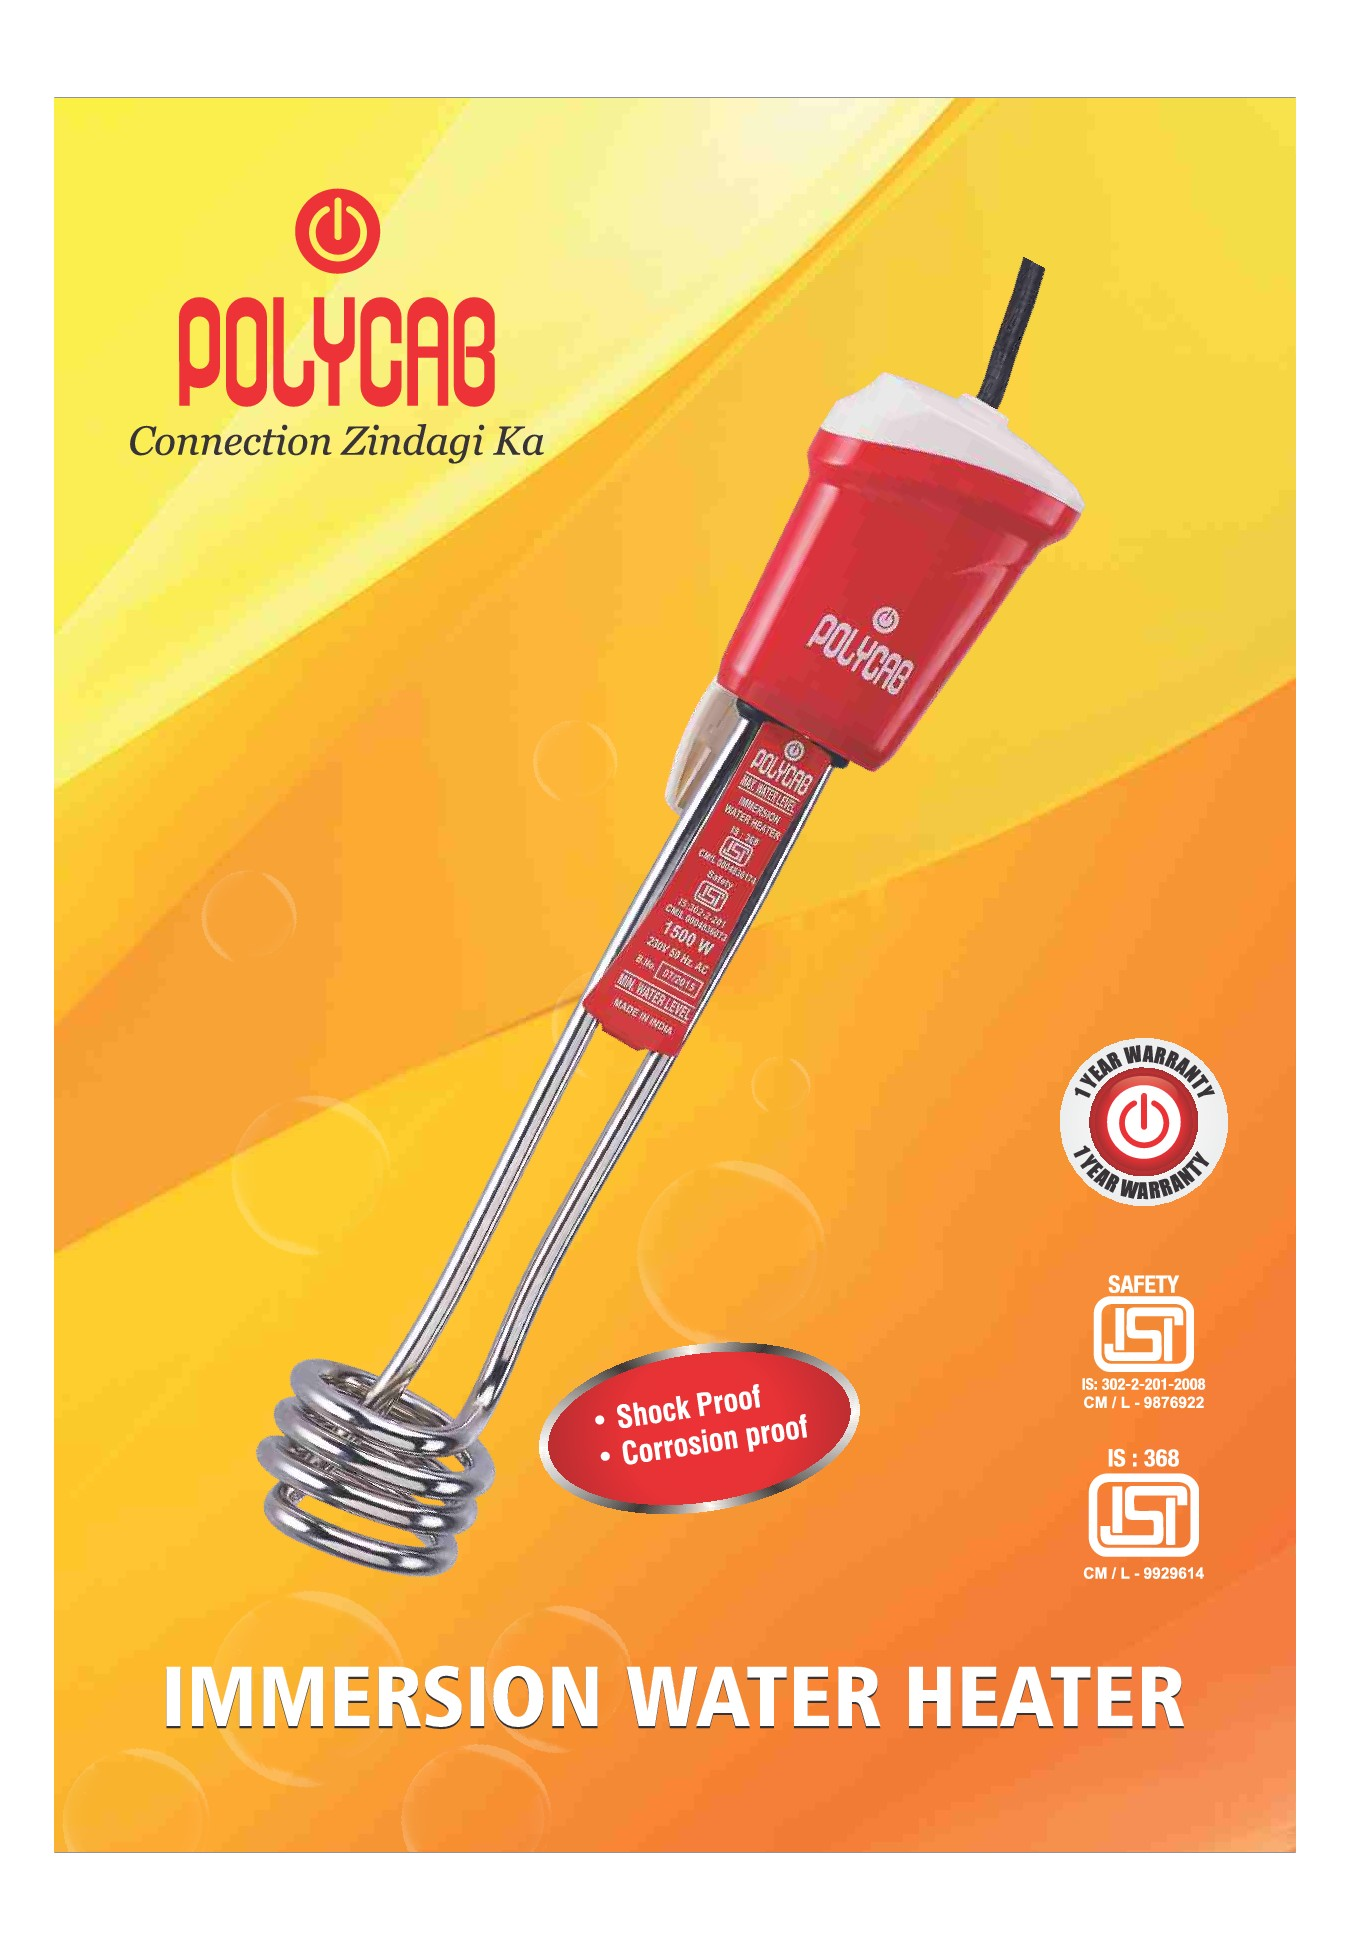 Polycab Products Catalogue